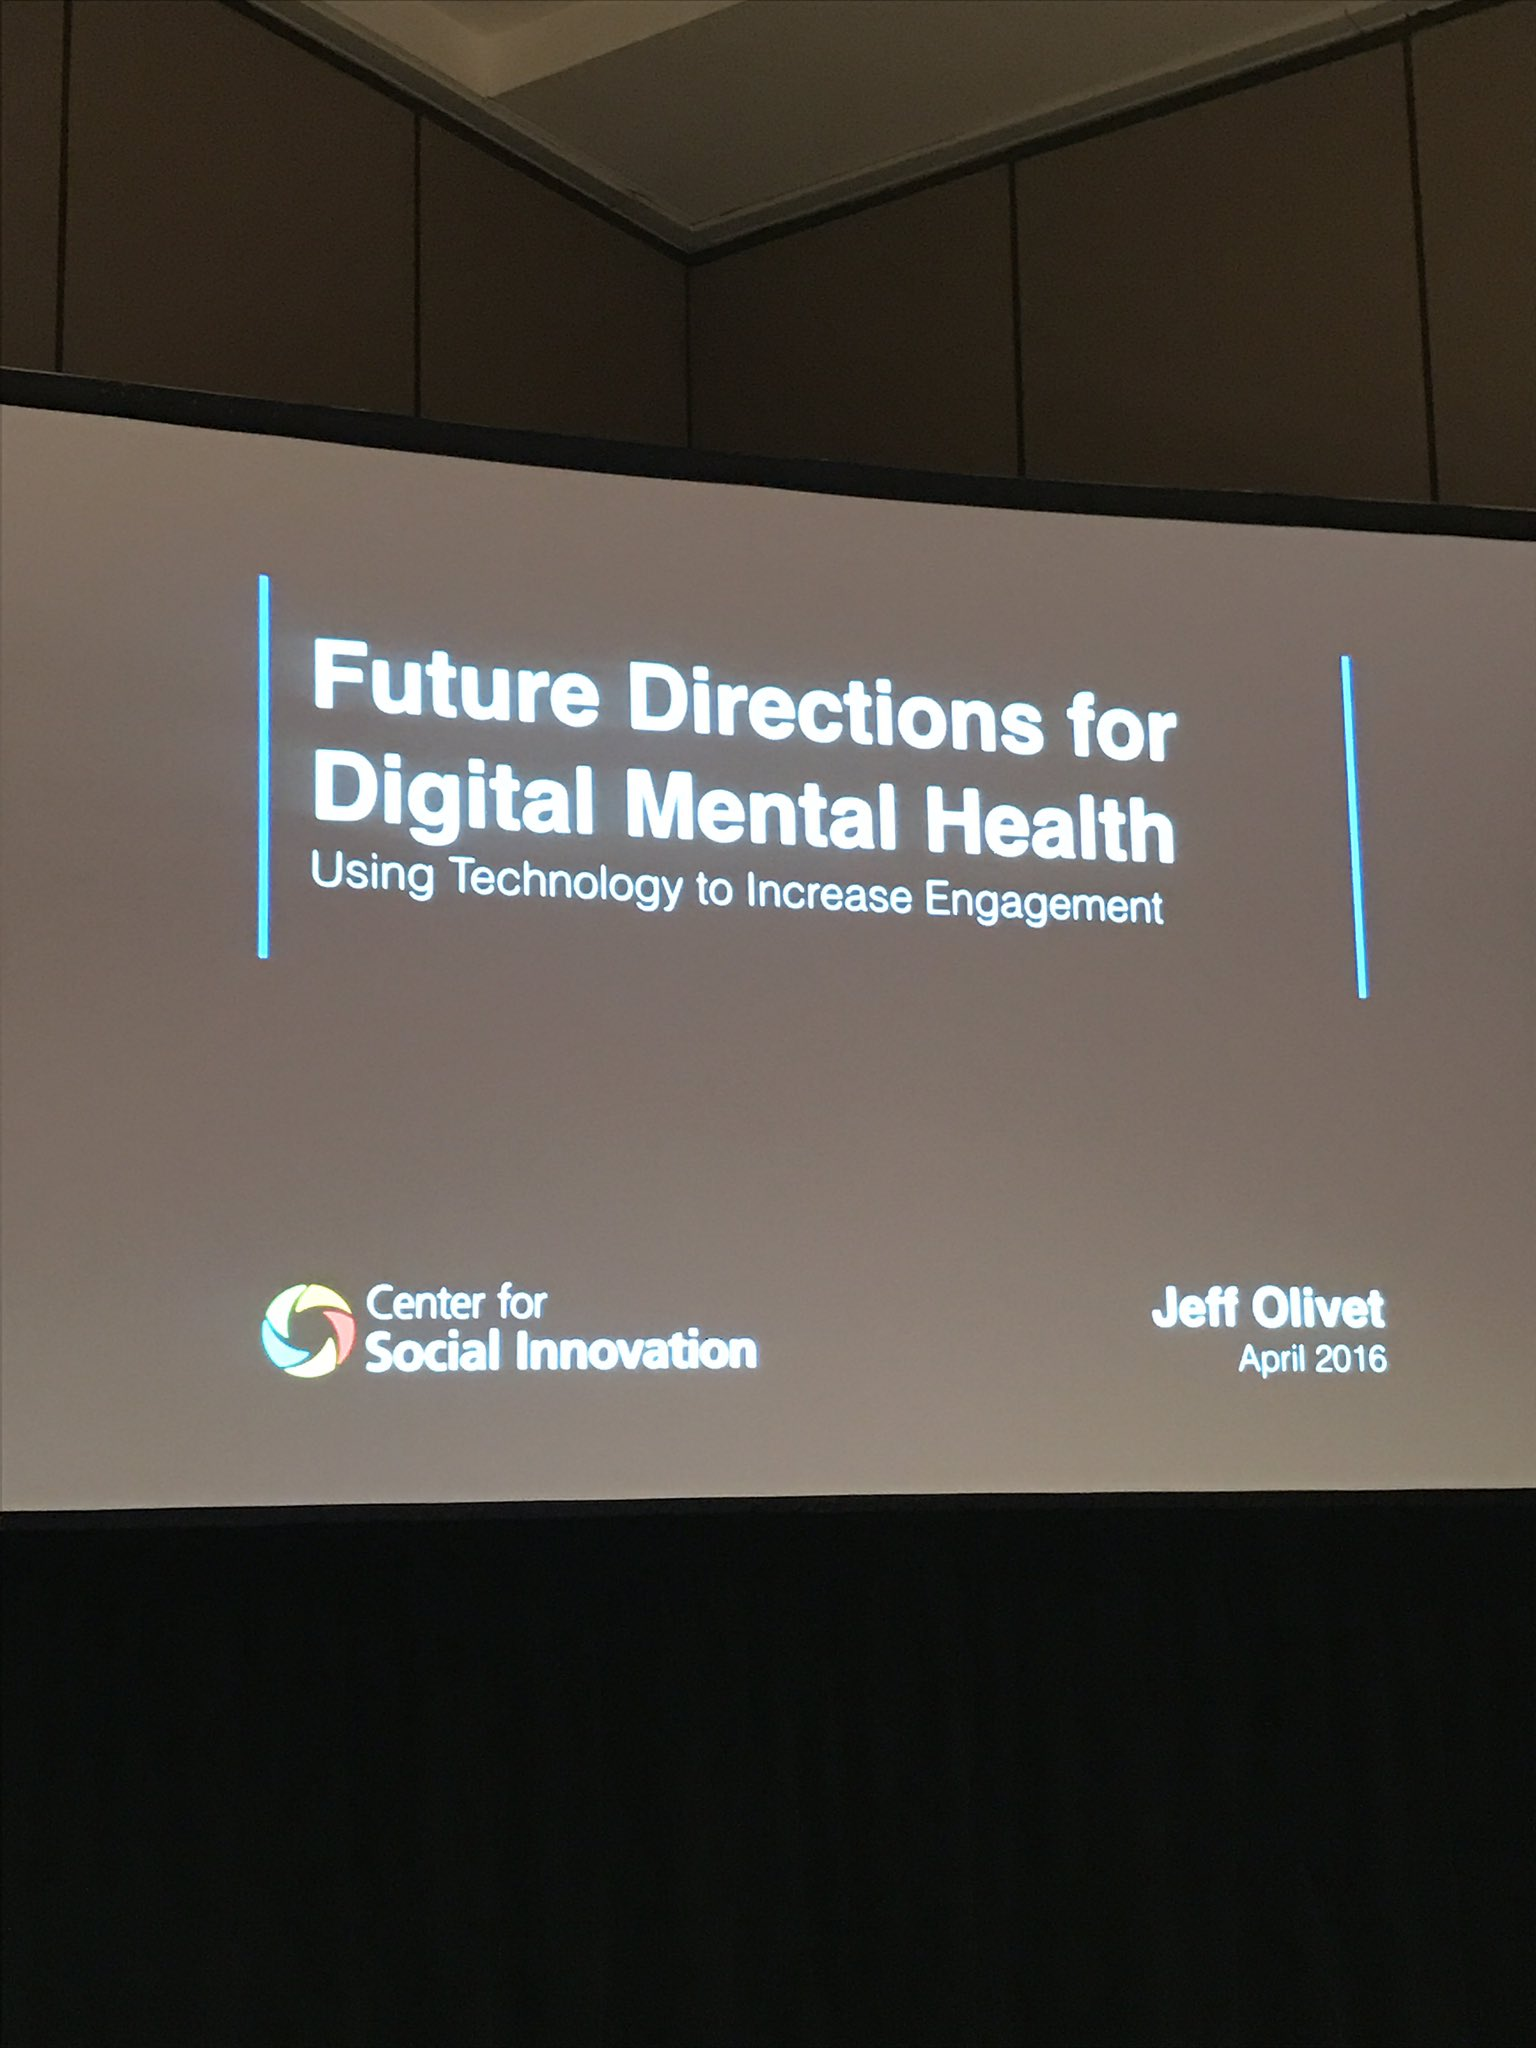 Up next Jeff Olivet from the @c4innovates updates on the future of digital engagement for mental health #NatCon17 #mhealth https://t.co/wC6OKYvaon